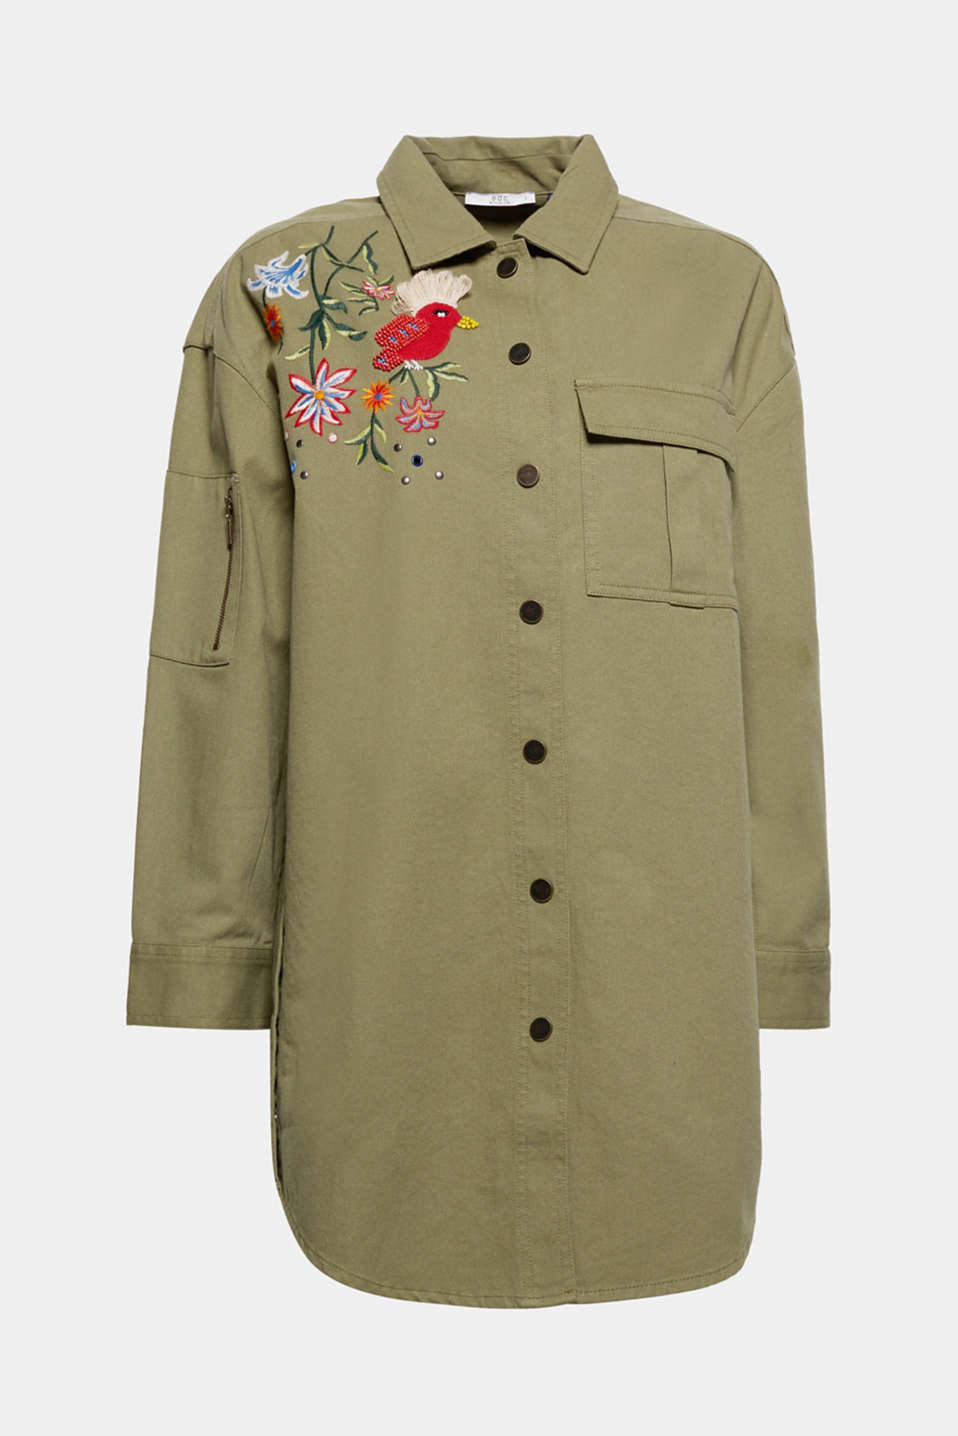 A piece to die for: this slightly oversized utility jacket is embellished on both sides with colourful embroidery.